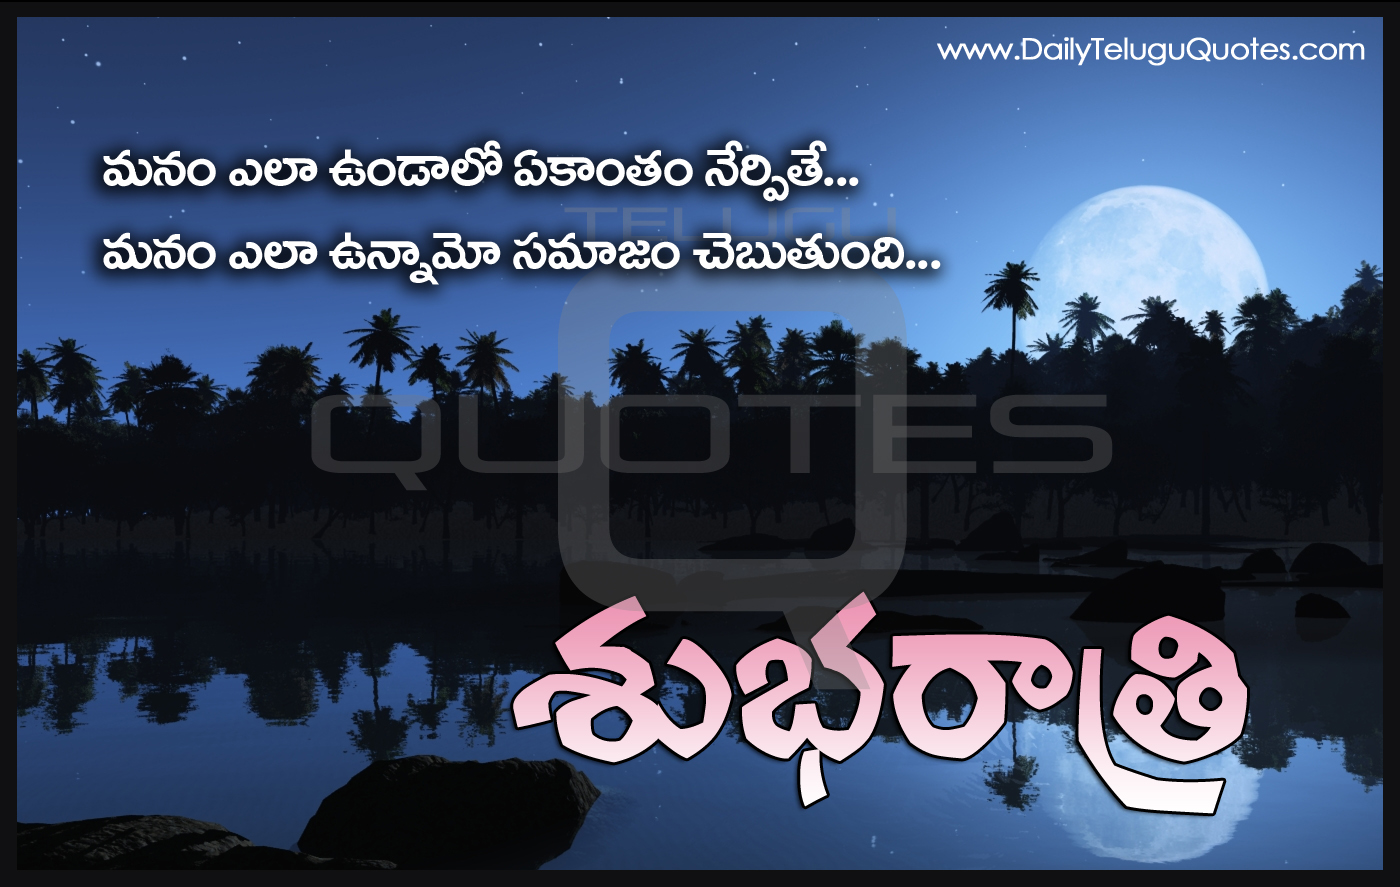 Telugu Good Night Quotes Wallpapers Good Night Quotes   Best Wishes In Life